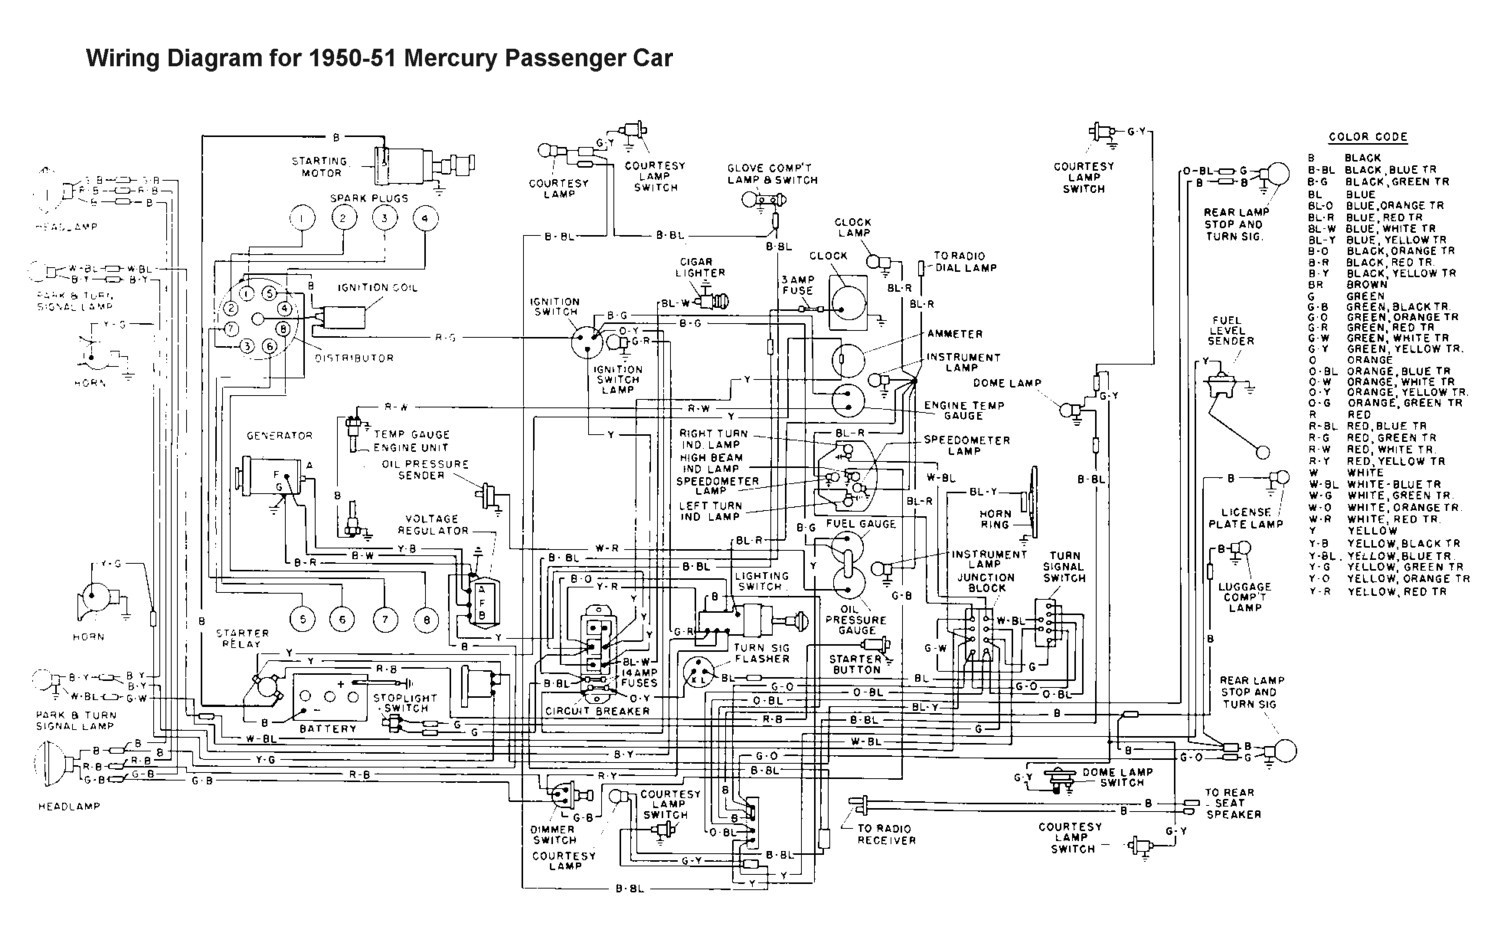 Flathead Electrical Wiring Diagrams Ford 8n Generator Diagram For 1950 51 Mercury Car